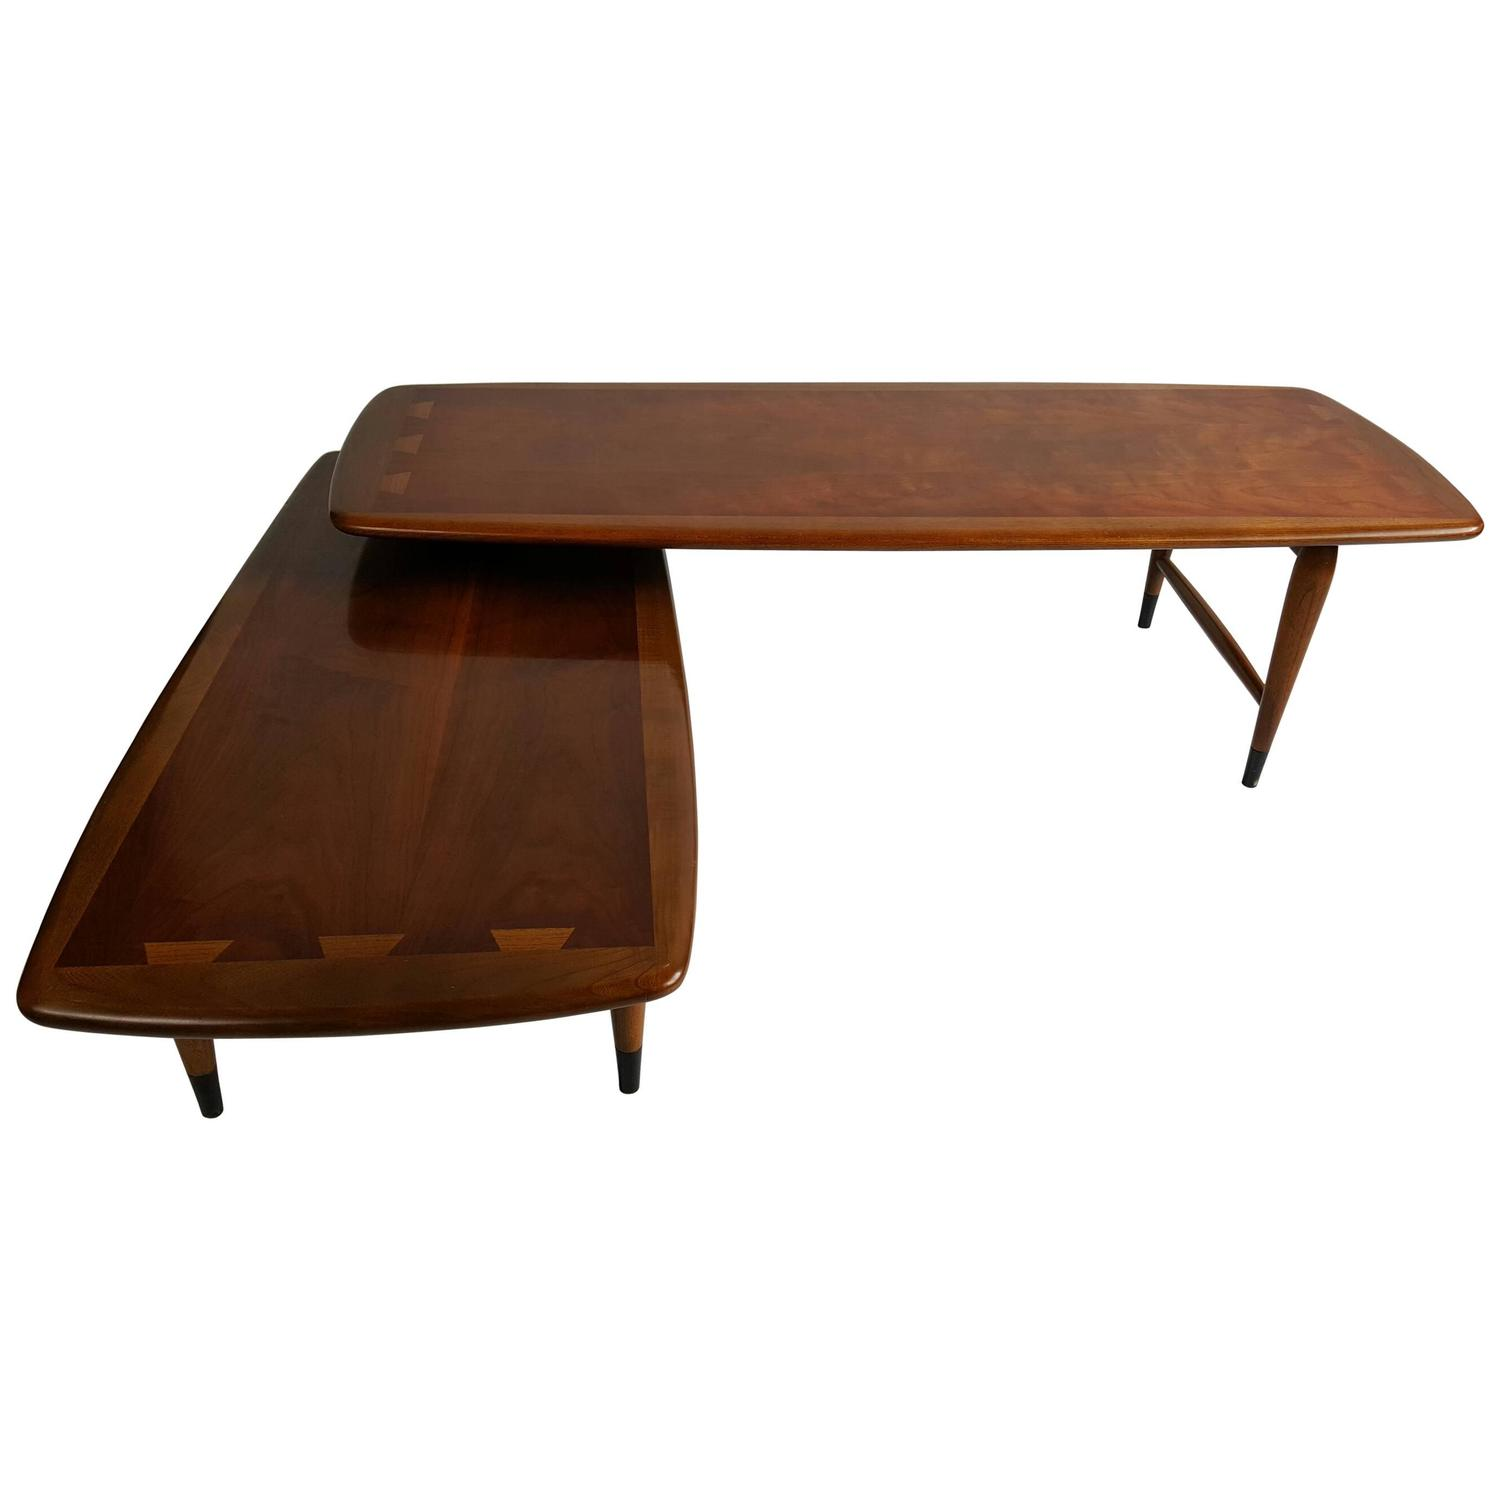 Classic Modernist Lane Acclaim Switchblade Cocktail Table at 1stdibs